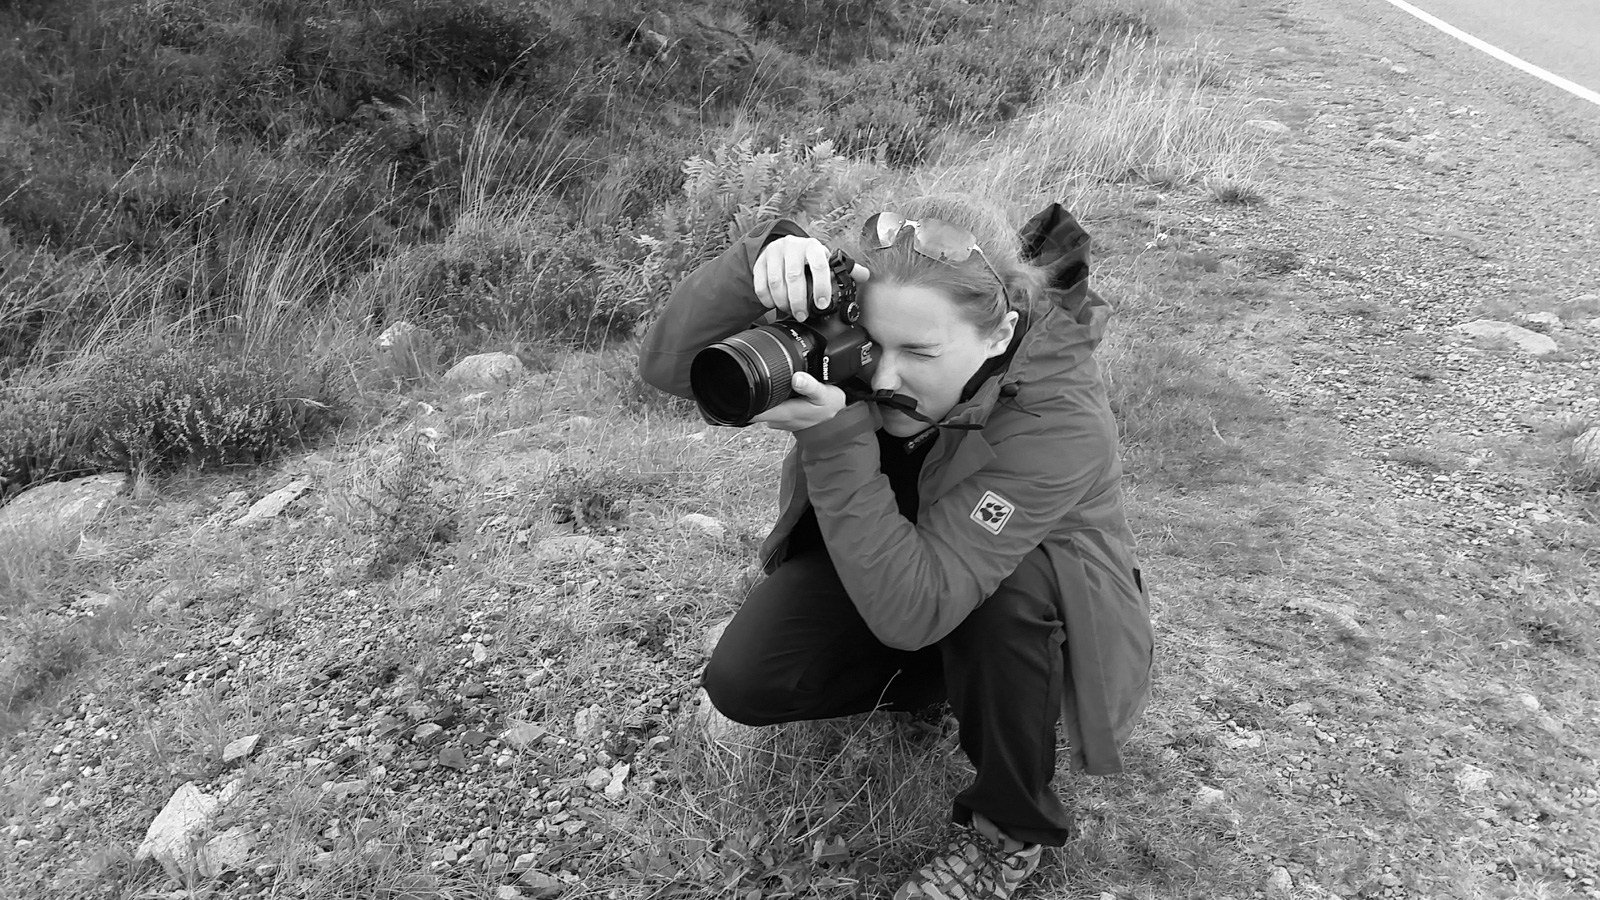 holly blake with her camera